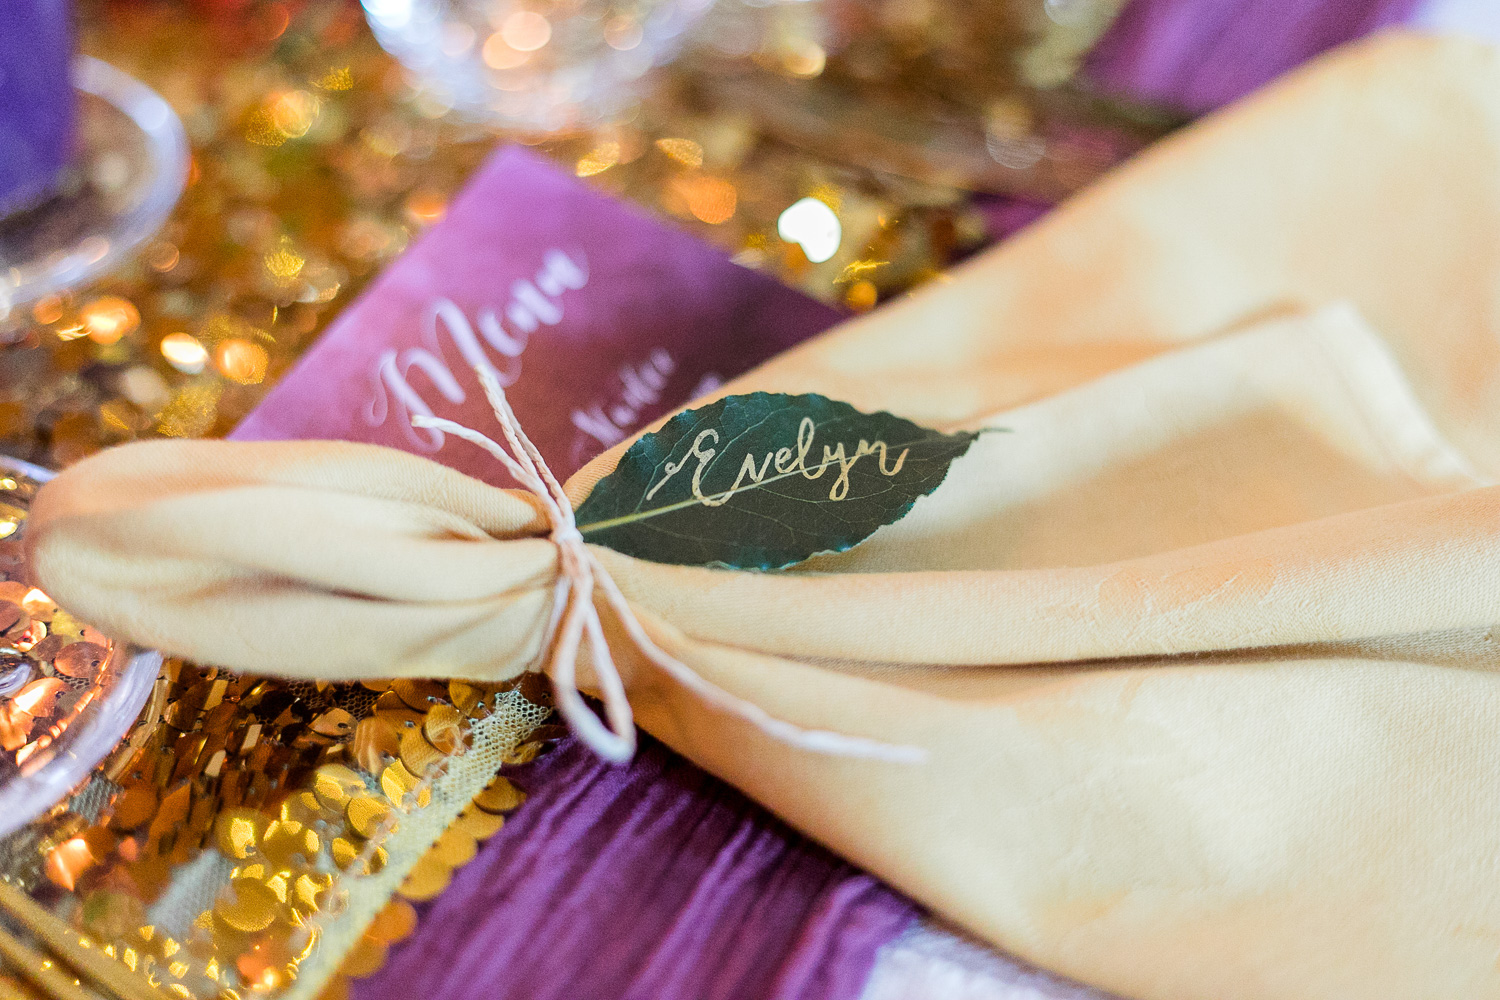 napkin for wedding table table setting with a leaf name tag